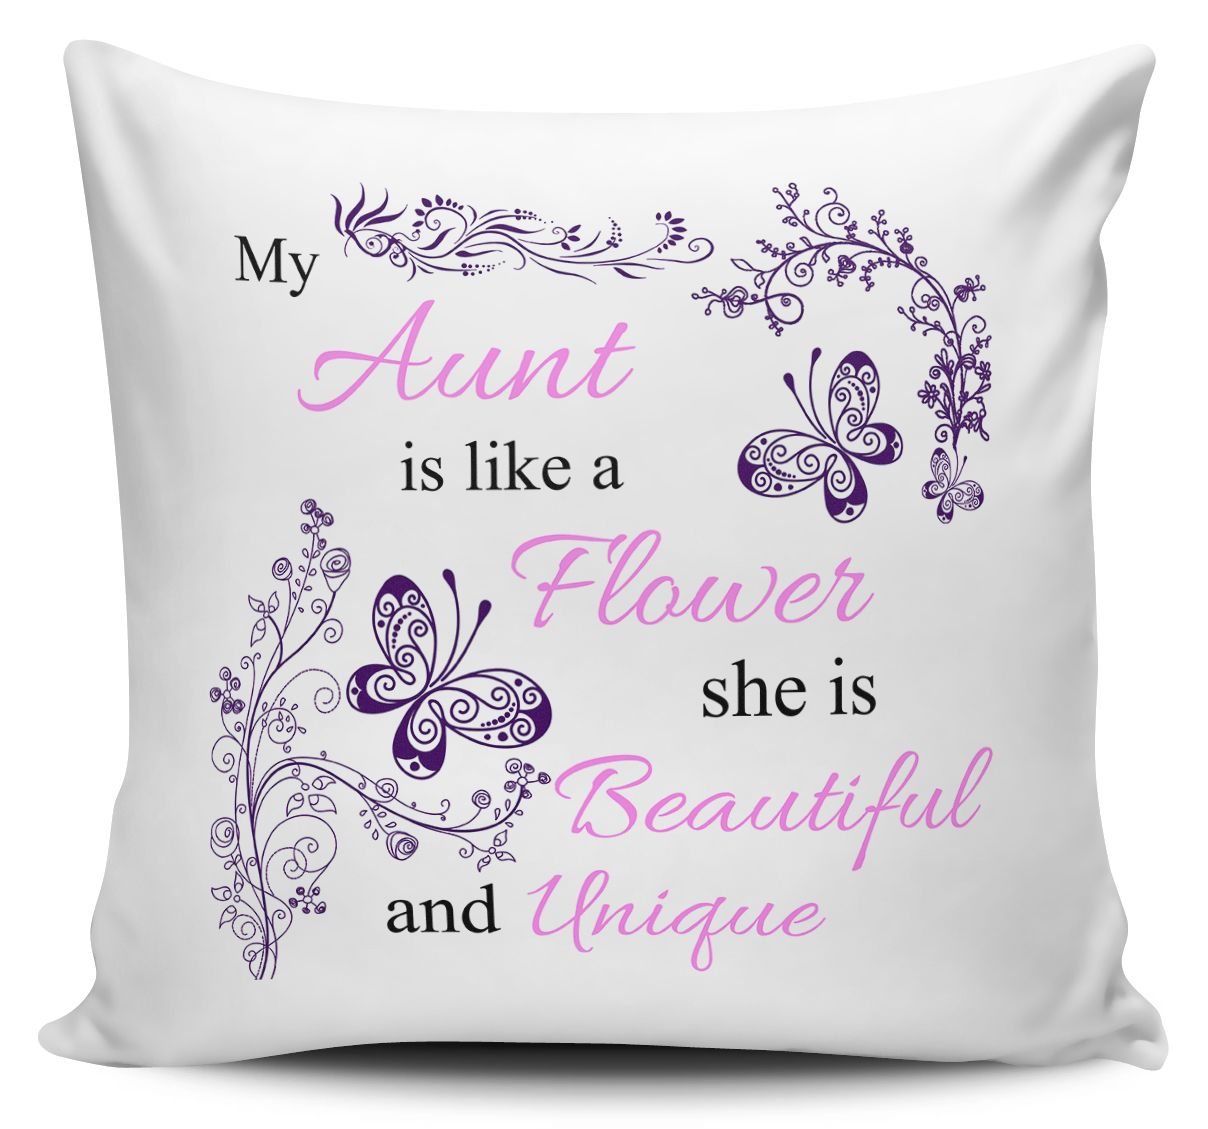 My Like A Flower She Is Beautiful Unique Cushion Covers